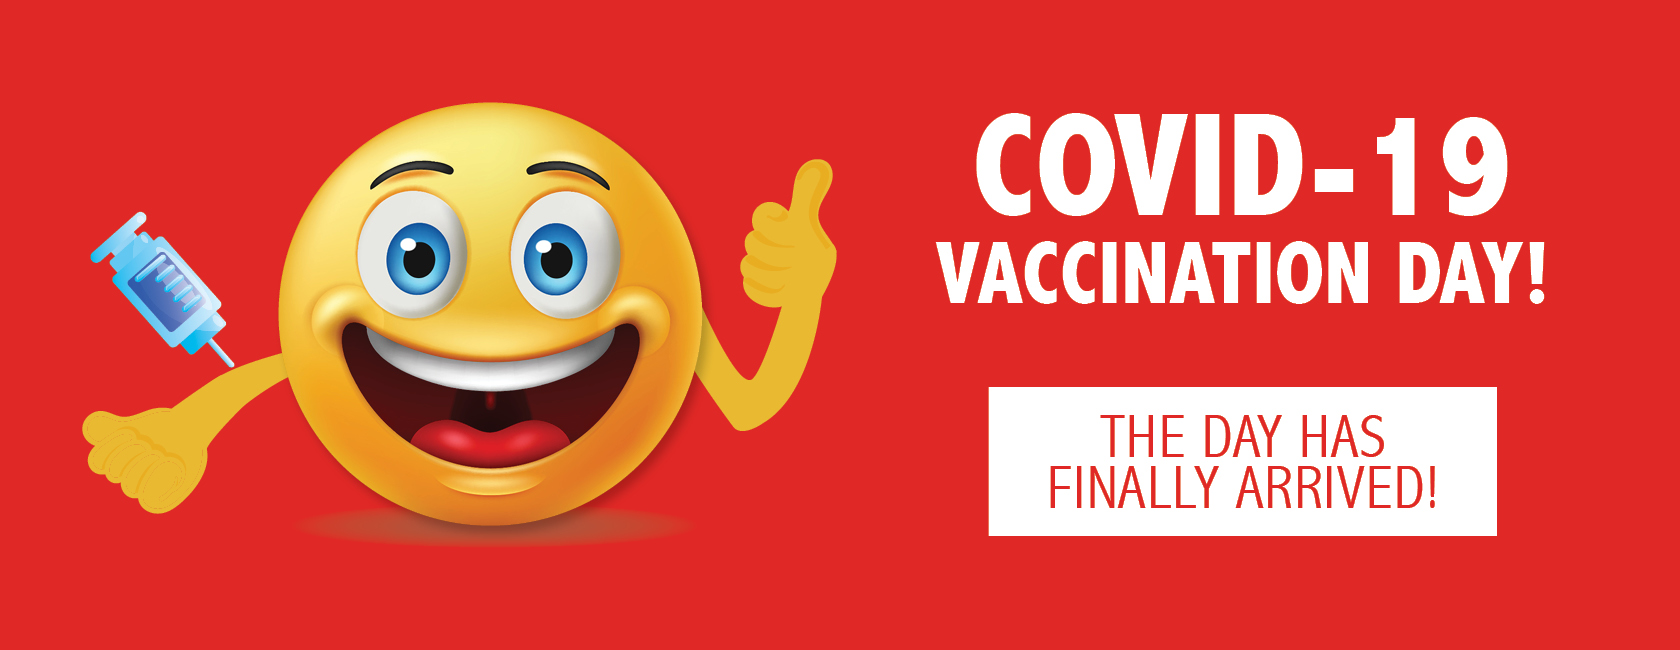 COVID-19 Vaccination Day is here